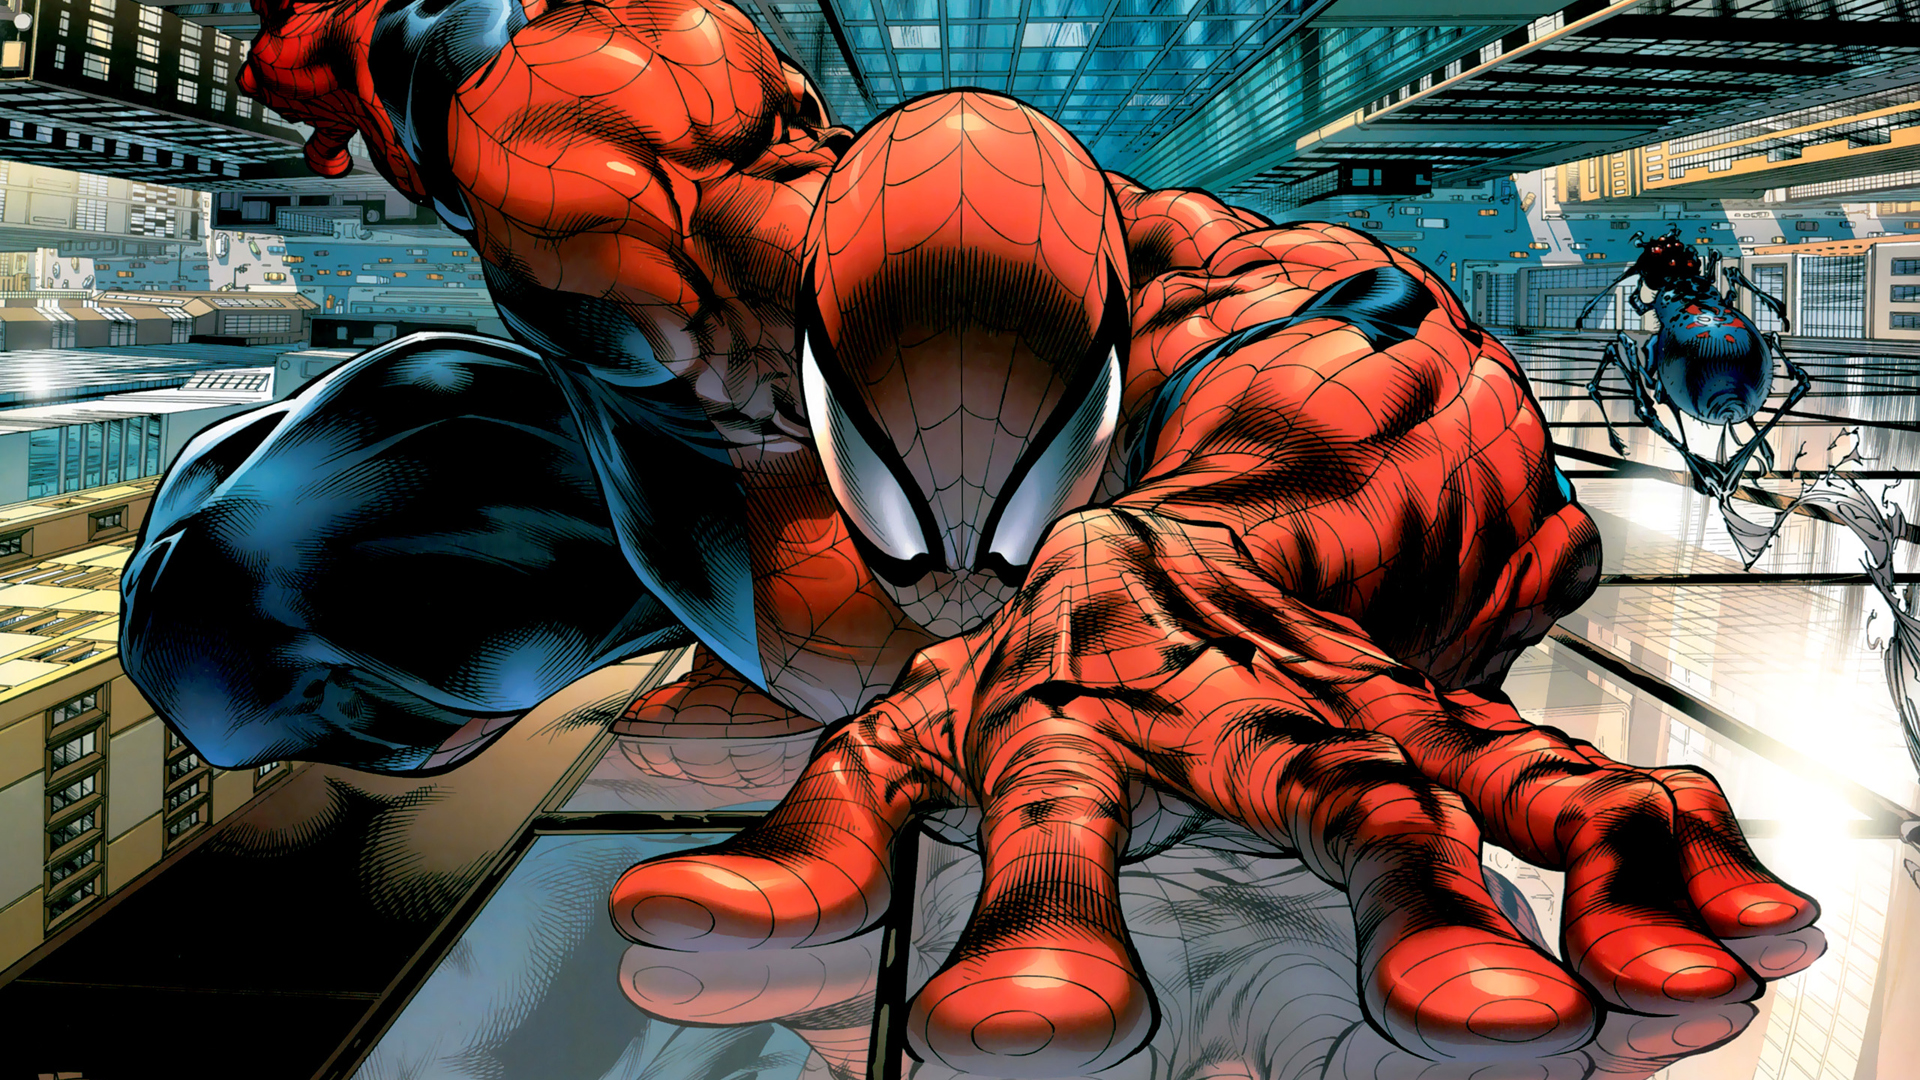 Comics Spider man Wallpaper 1920x1080 Comics Spiderman Marvel 1920x1080